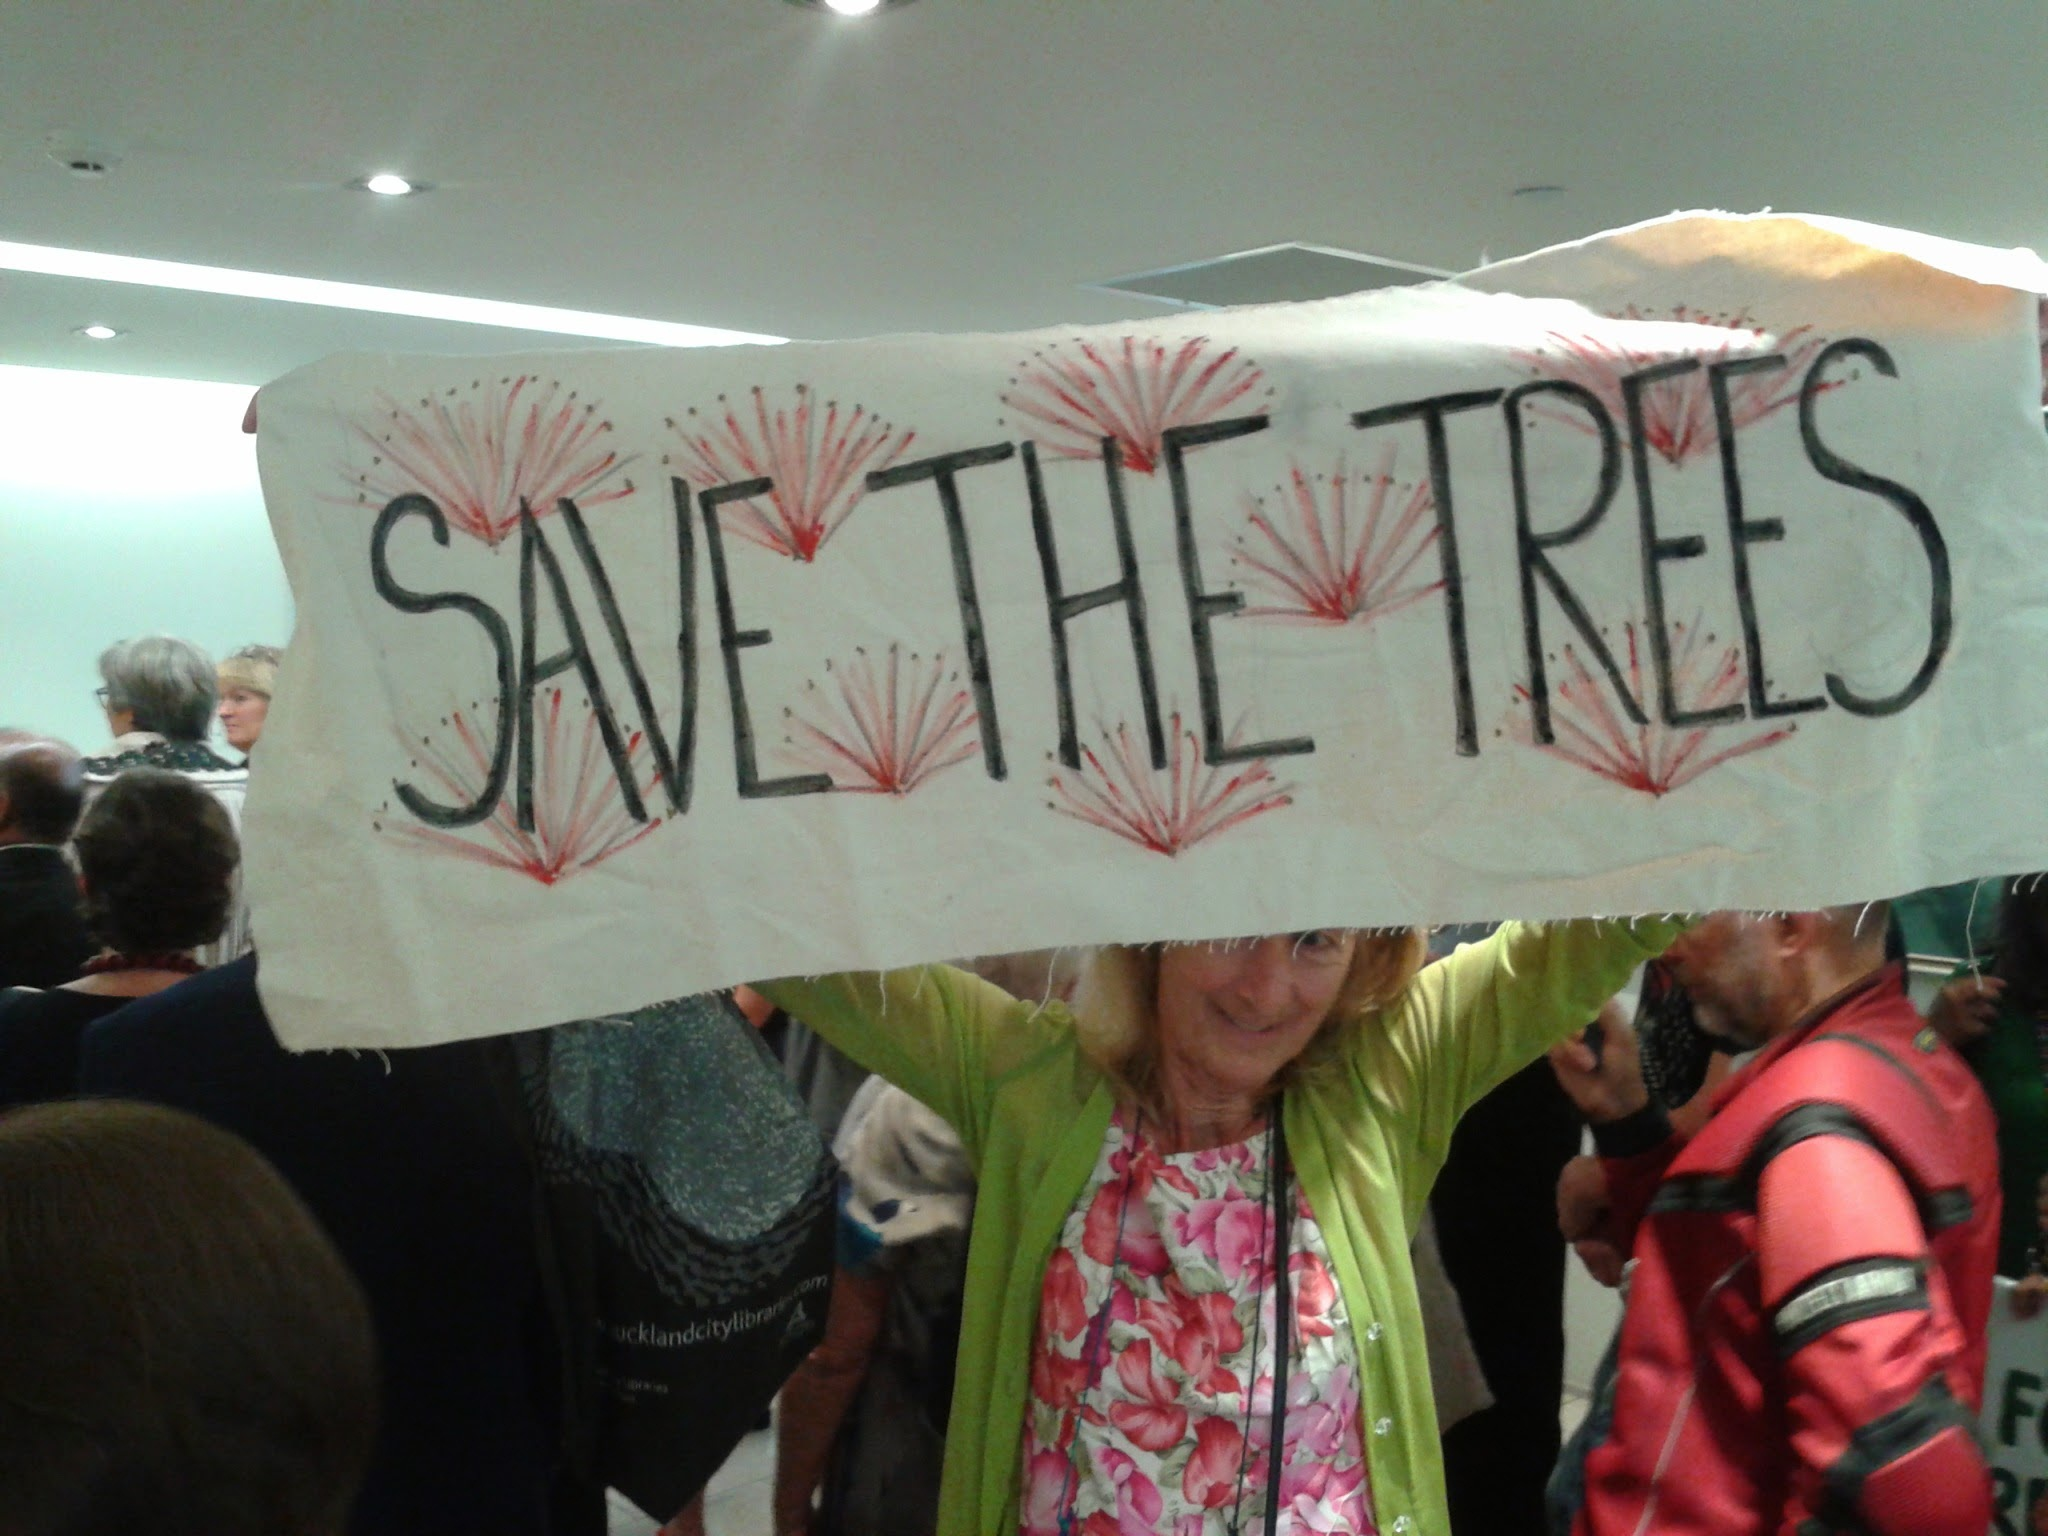 Pohutukawa 6 saved – a victory for a liveable city